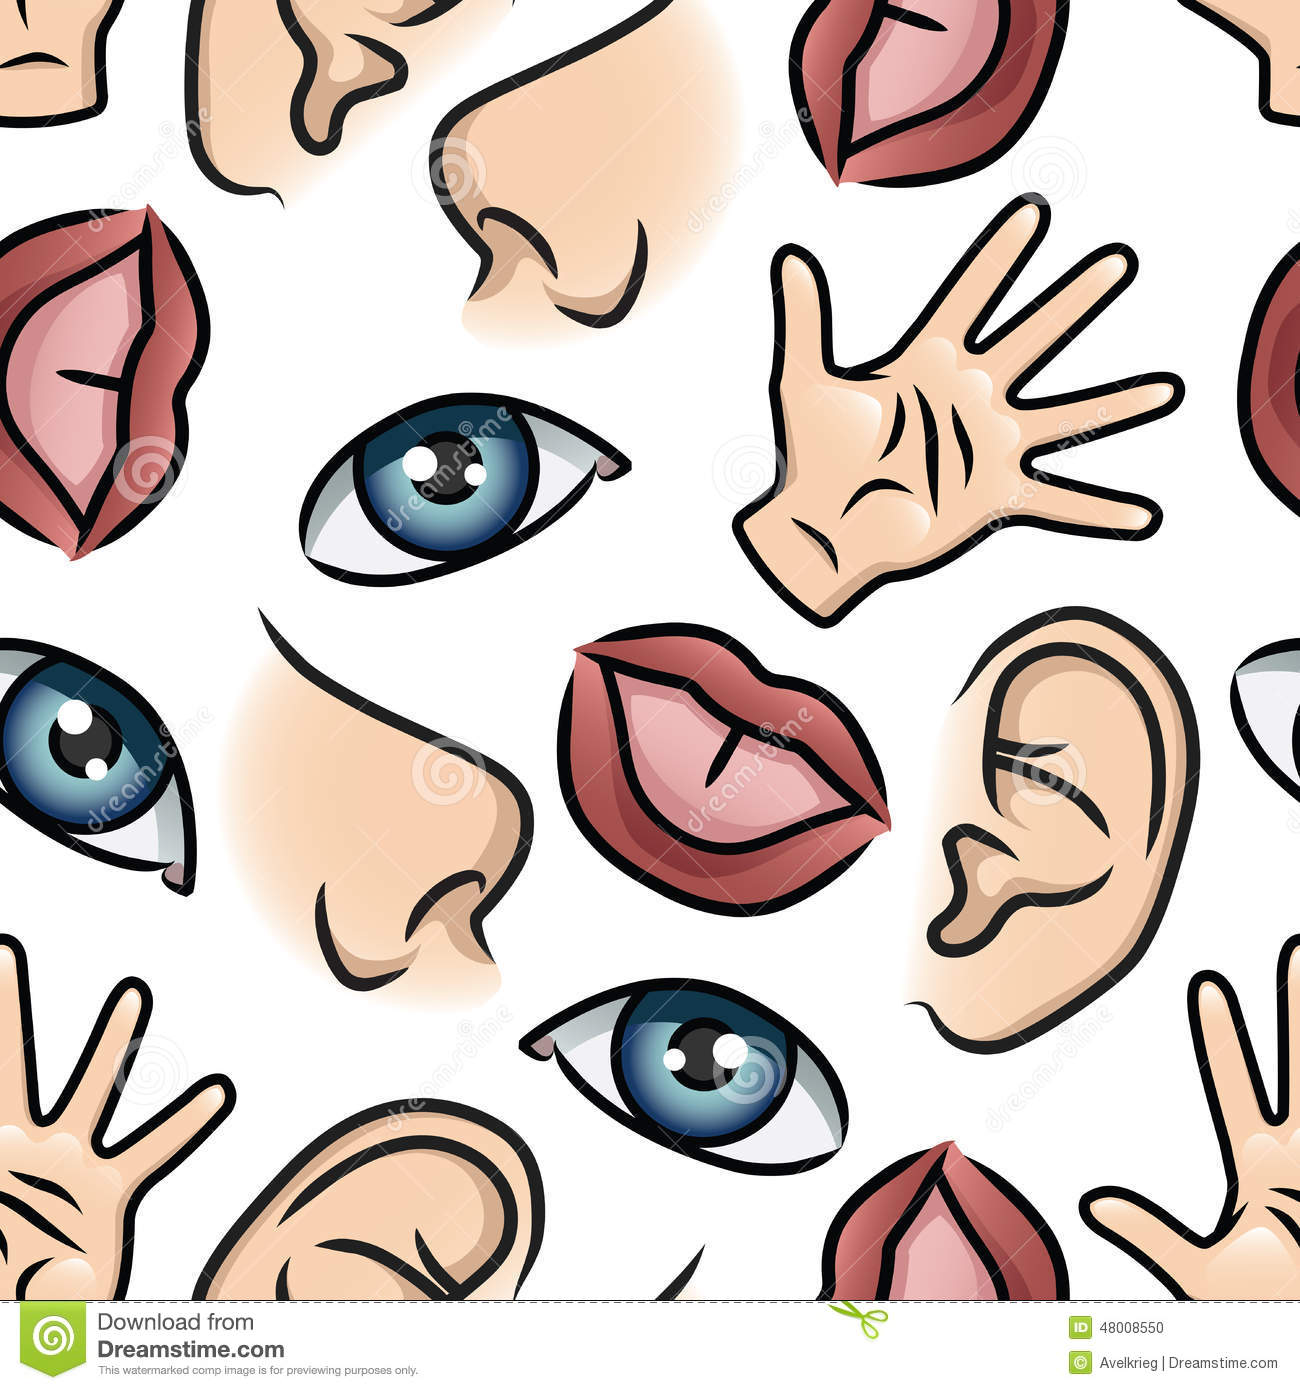 Five Senses Wallpaper Stock Vector - Image: 48008550